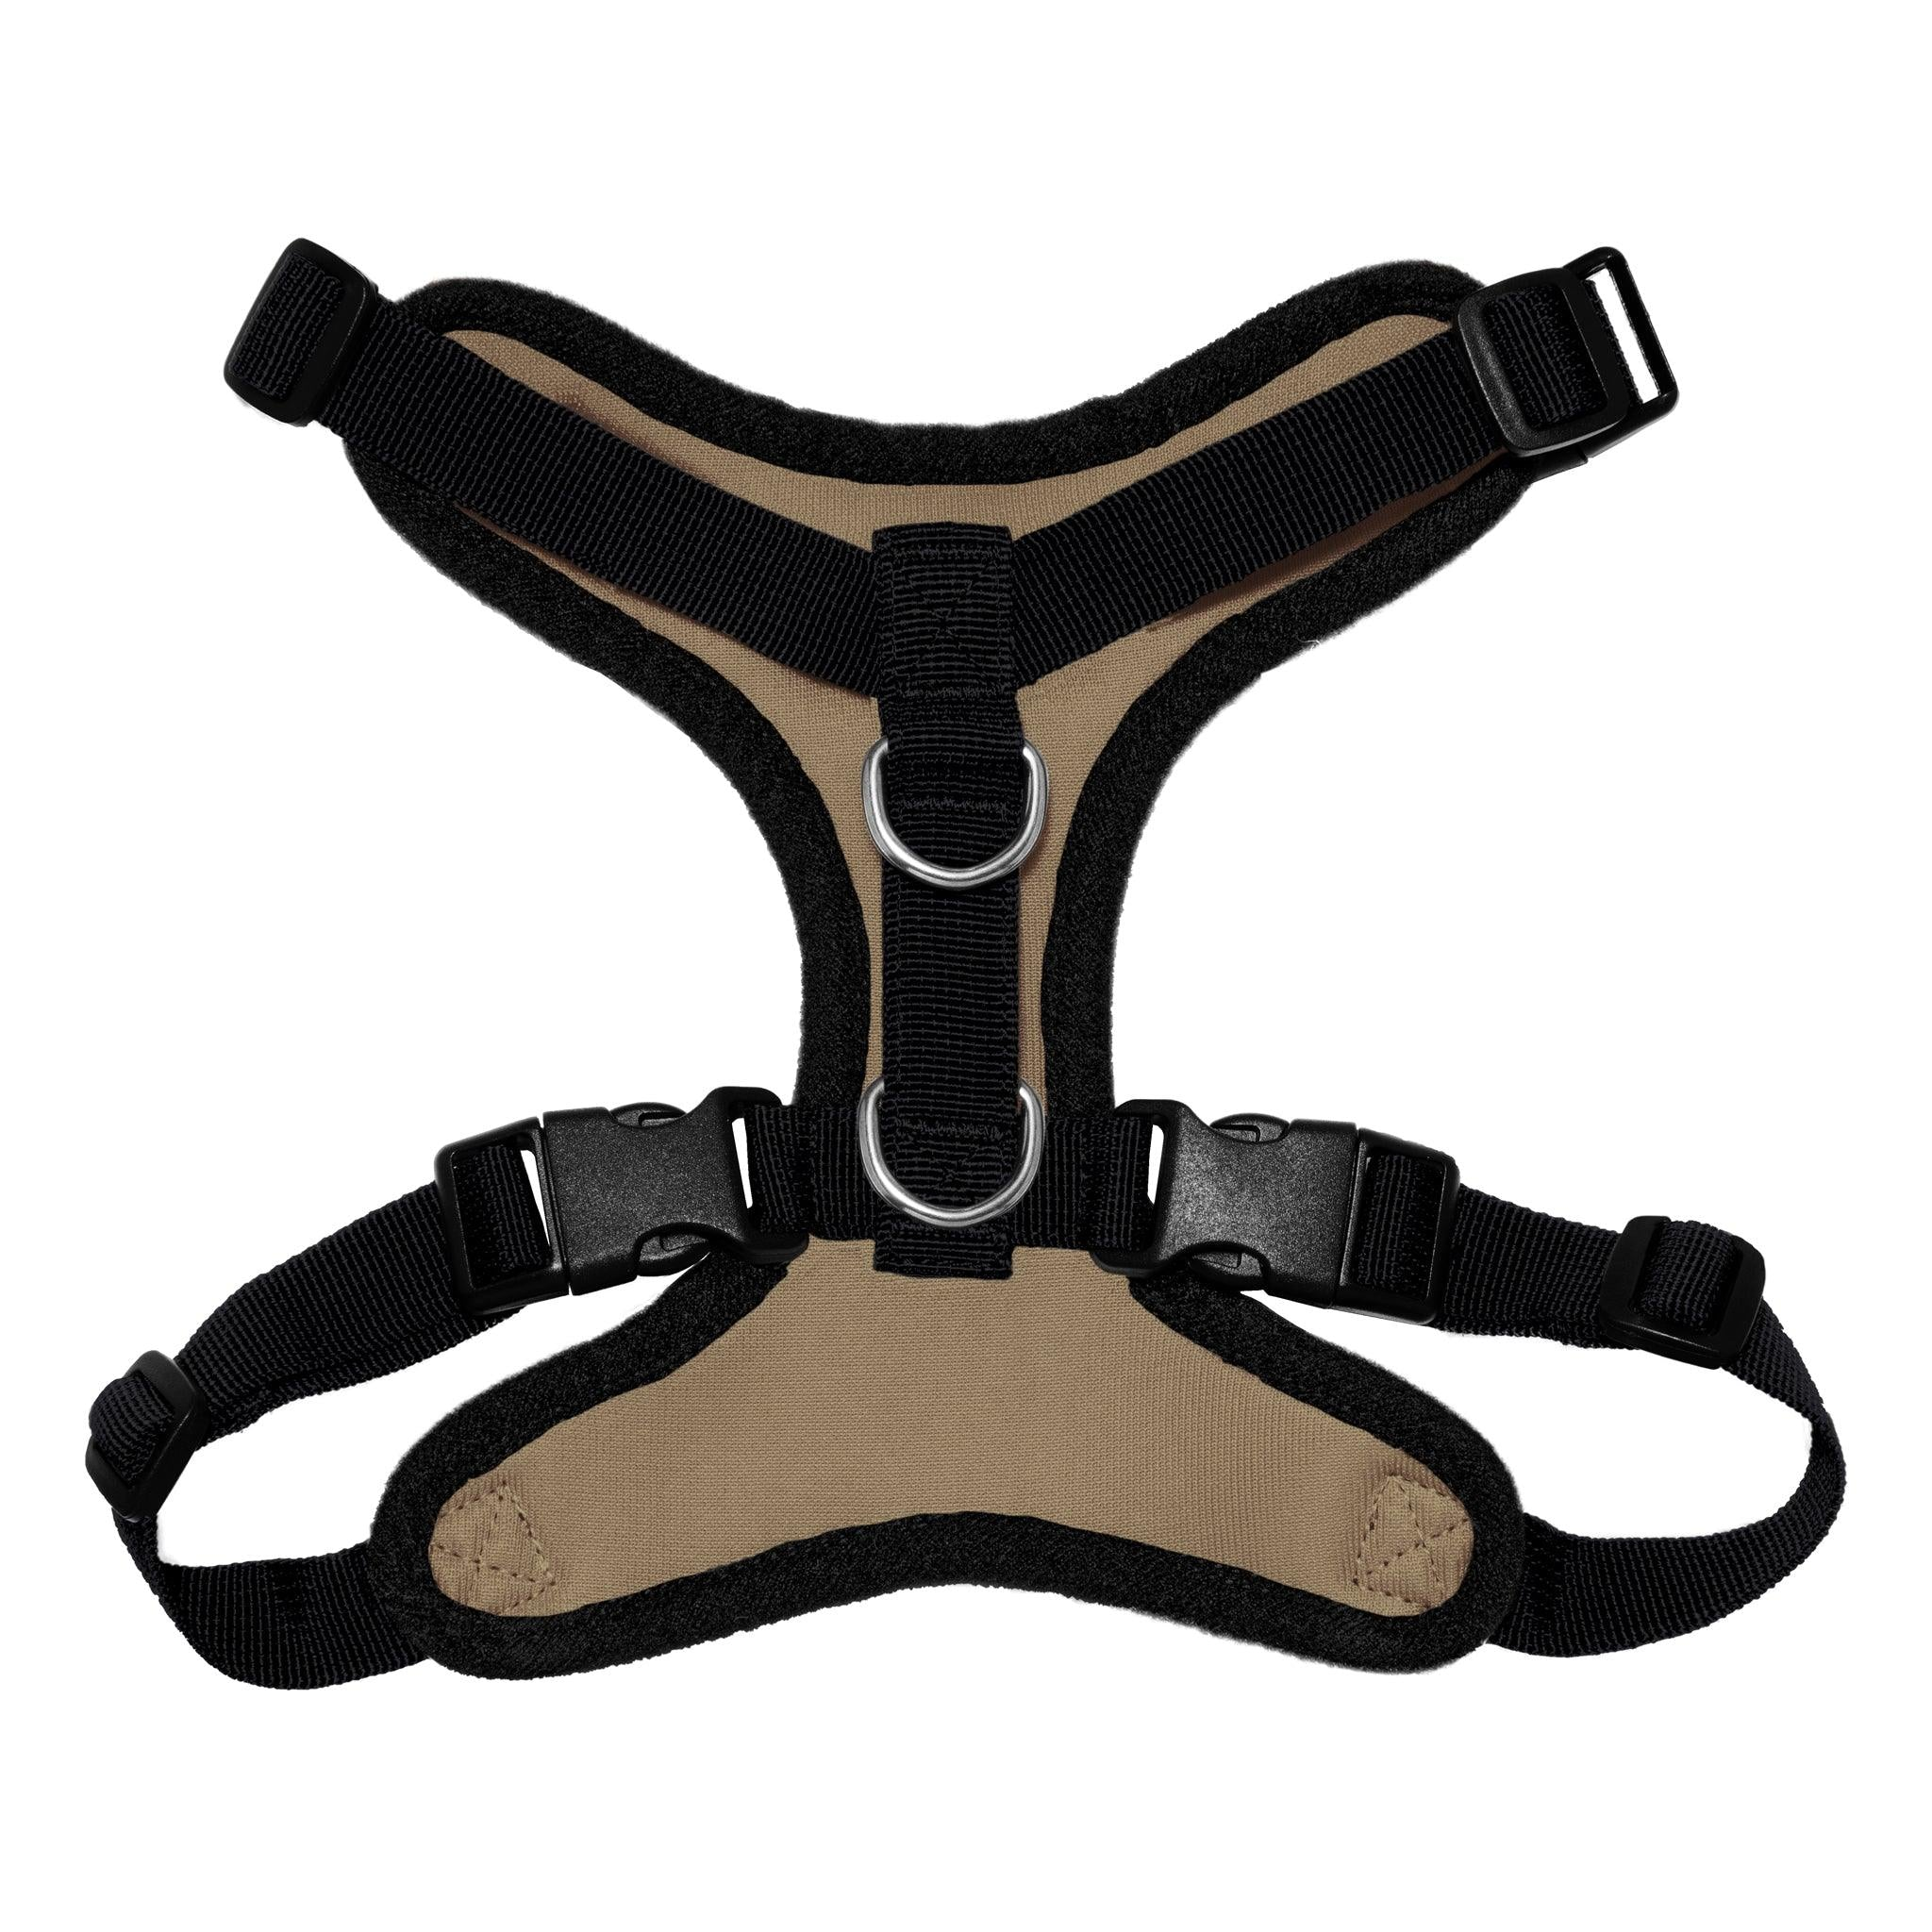 VOYAGER Step-In Lock Dog Harness in Camo with Black Trim and Webbing - Back